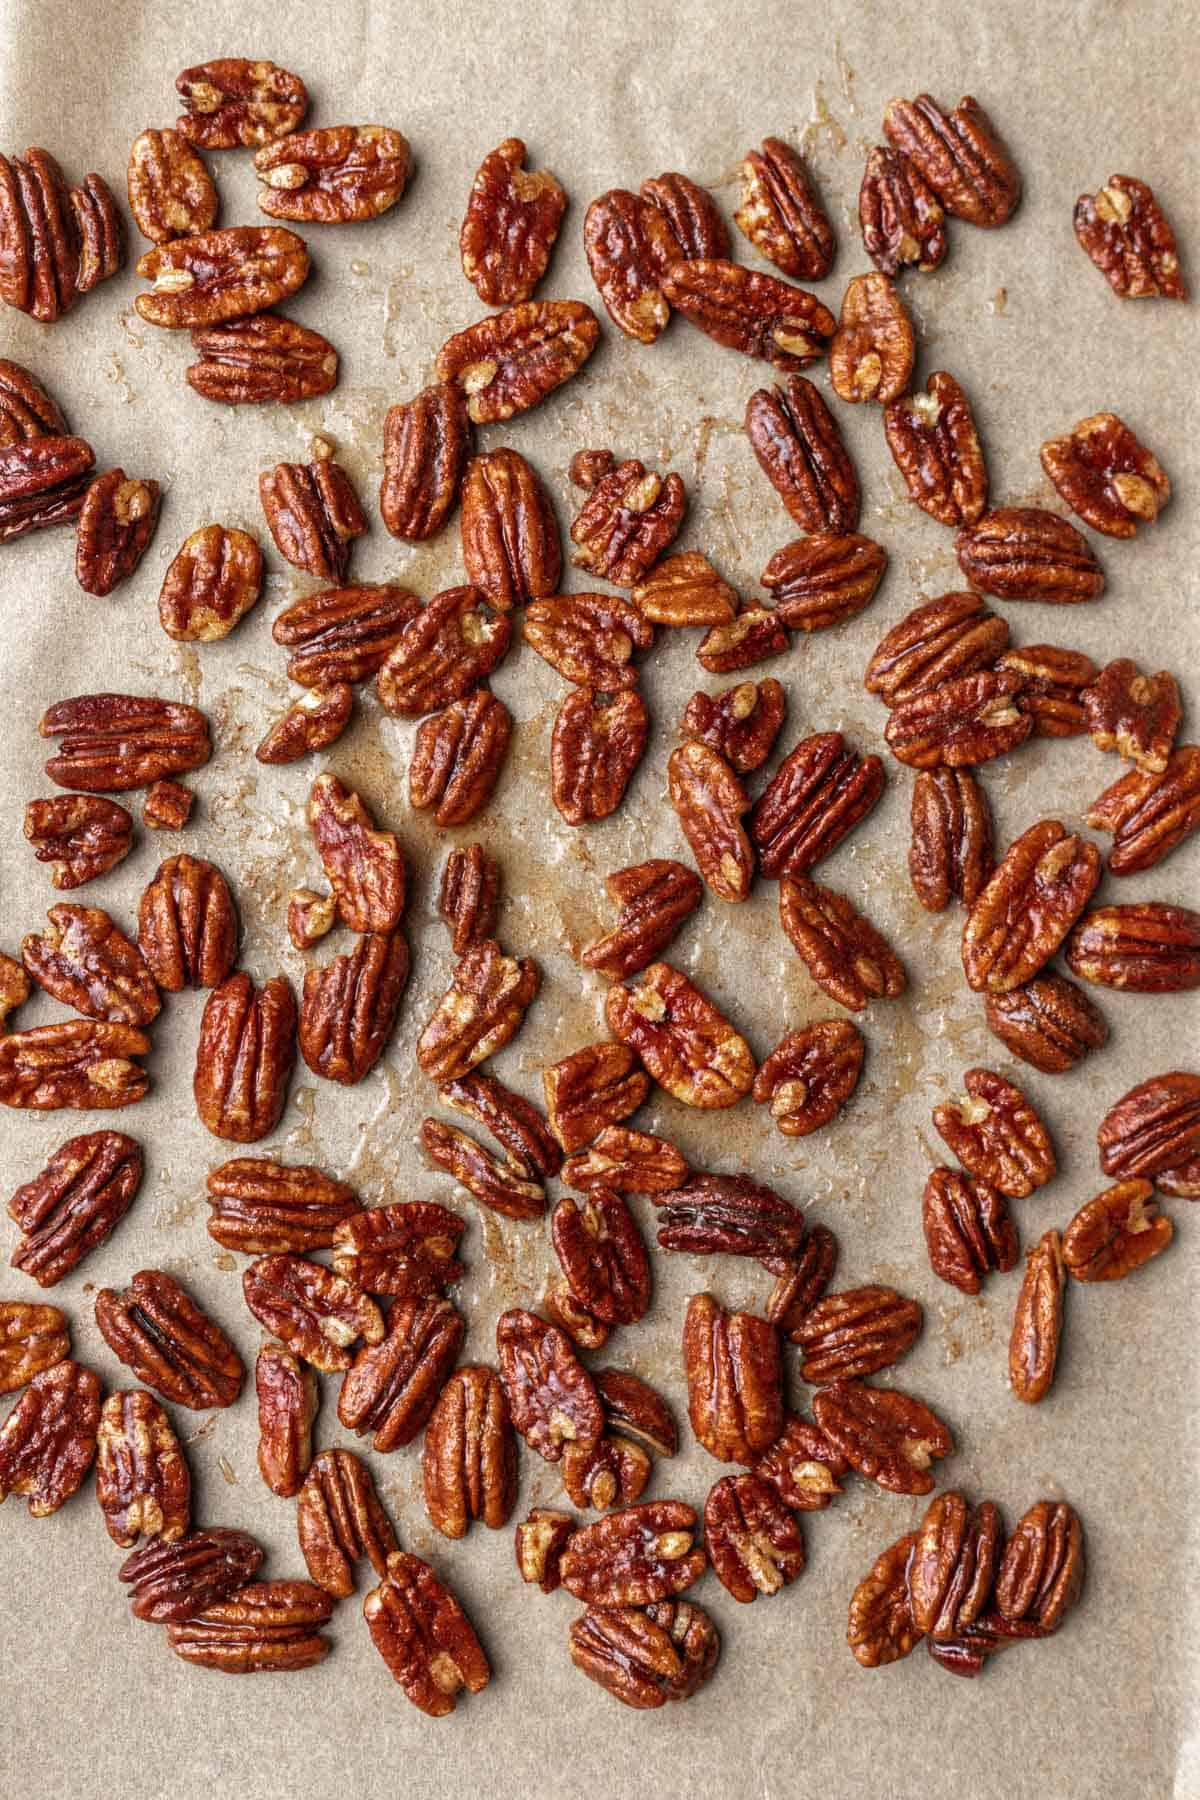 Maple cinnamon pecans on a sheet pan before toasting.